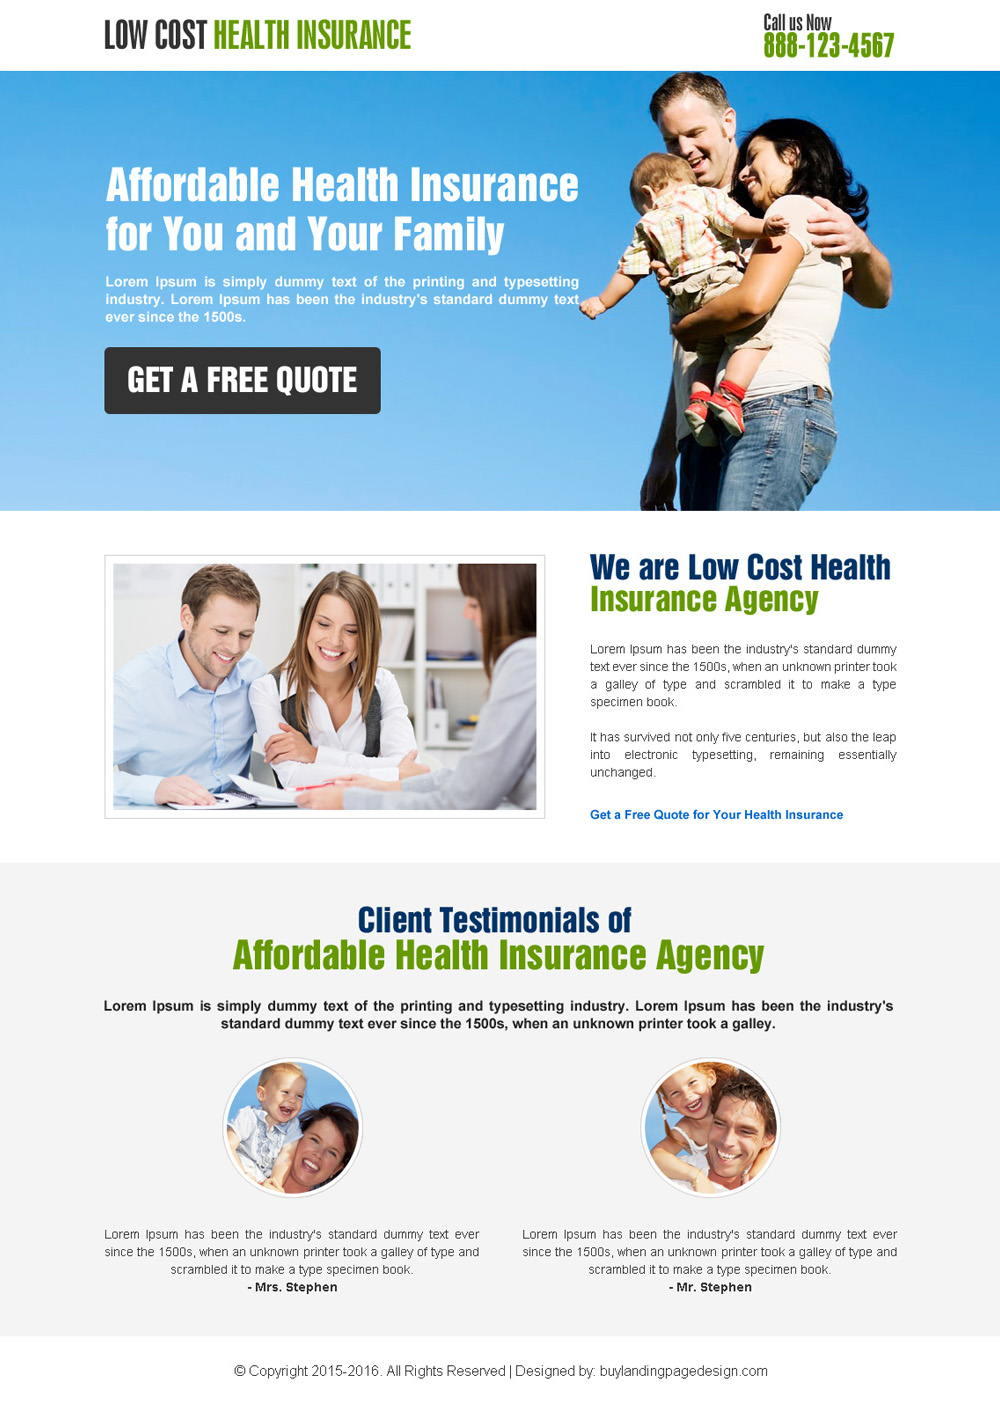 low-cost-health-insurance-converting-cta-landing-page-design-001